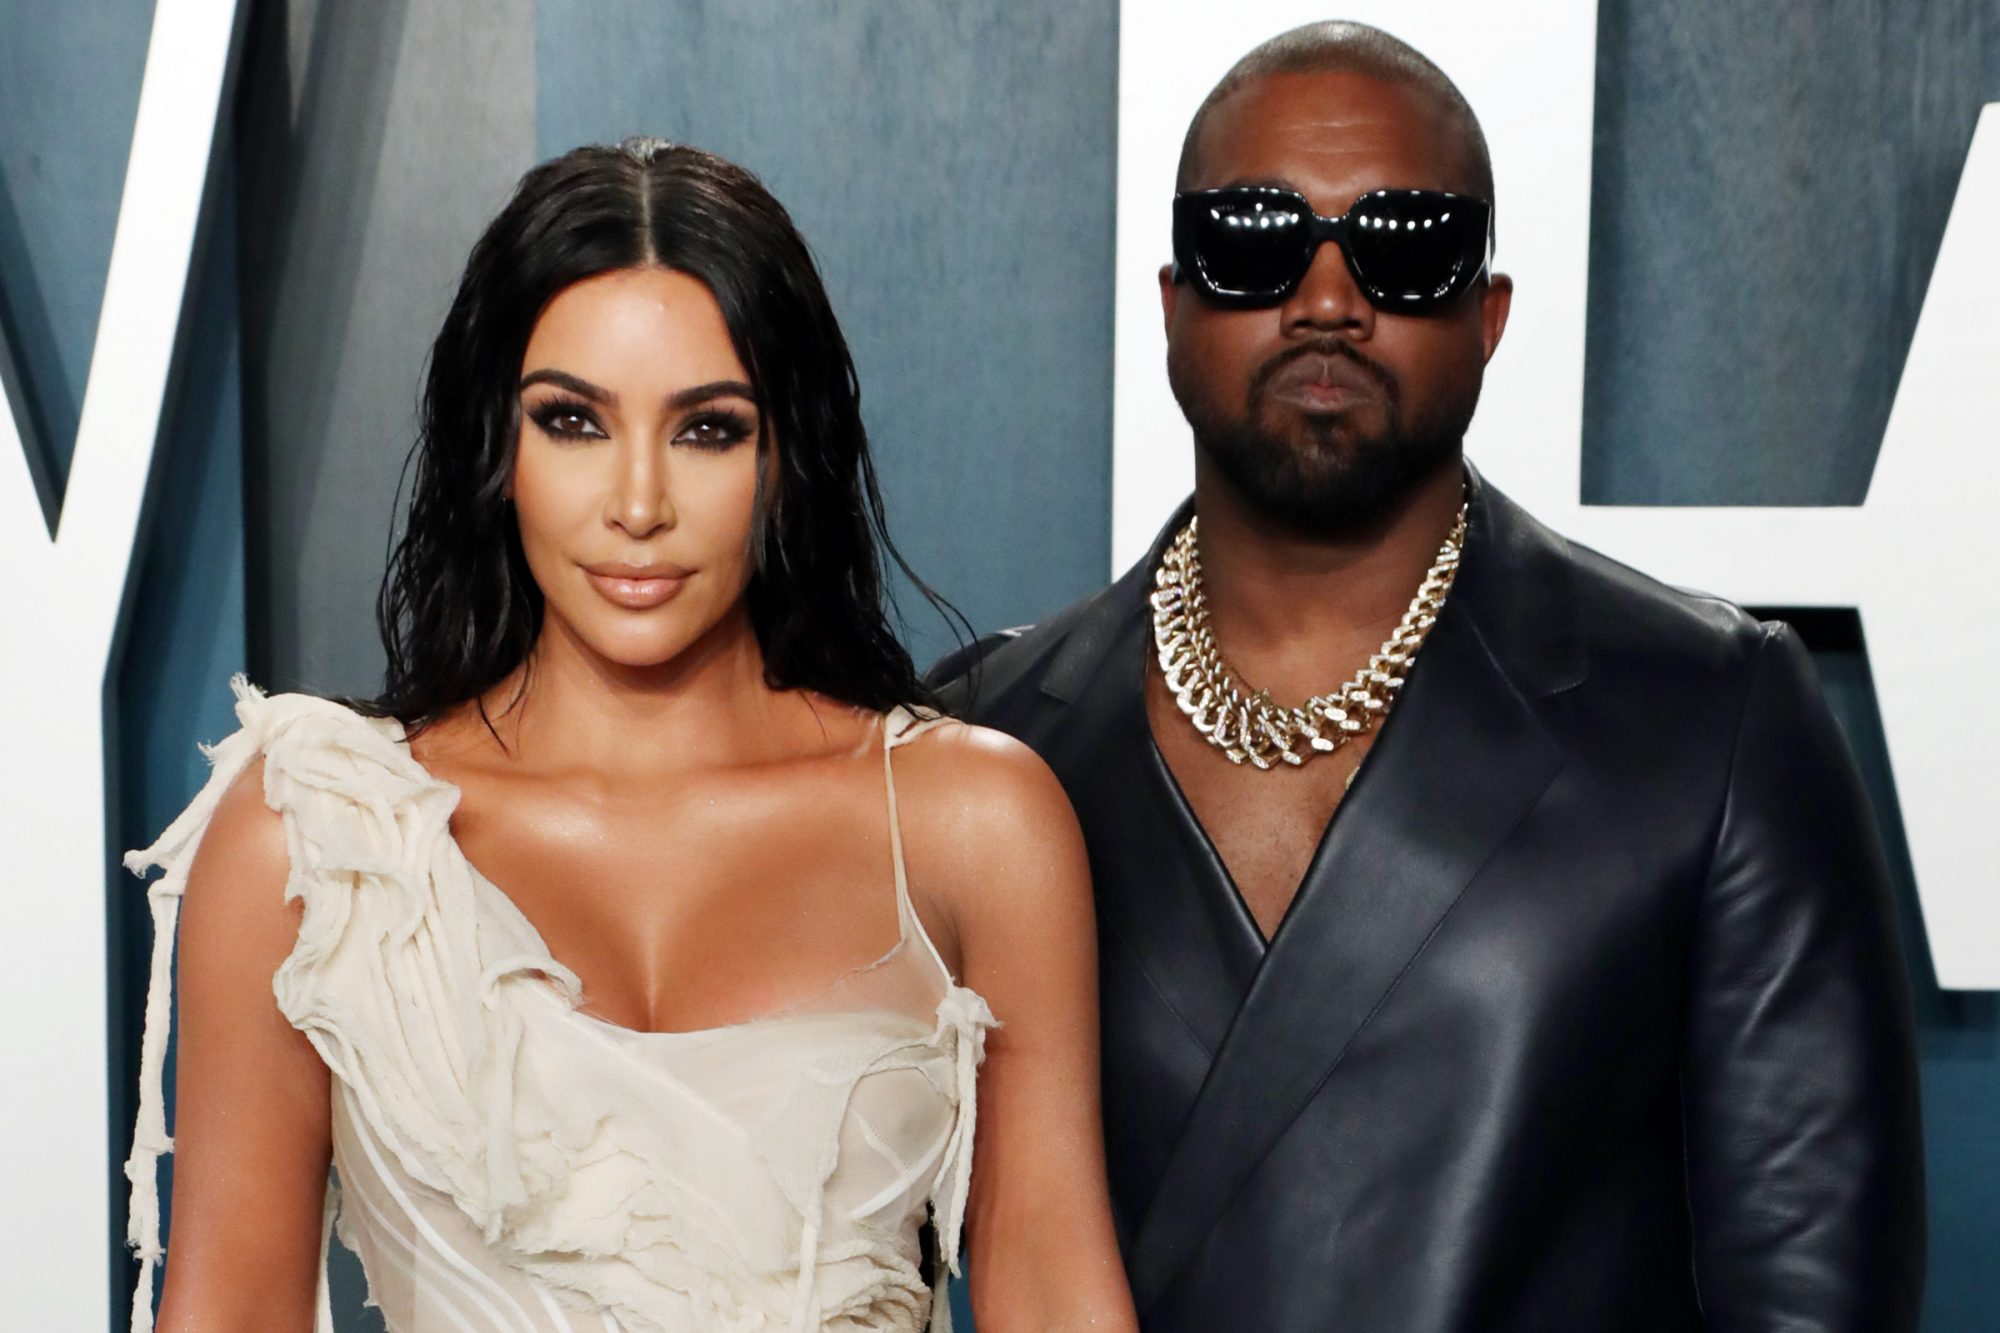 Kanye West Asks for Joint Custody in Response to Kim Kardashian's Divorce Filing | PEOPLE.com